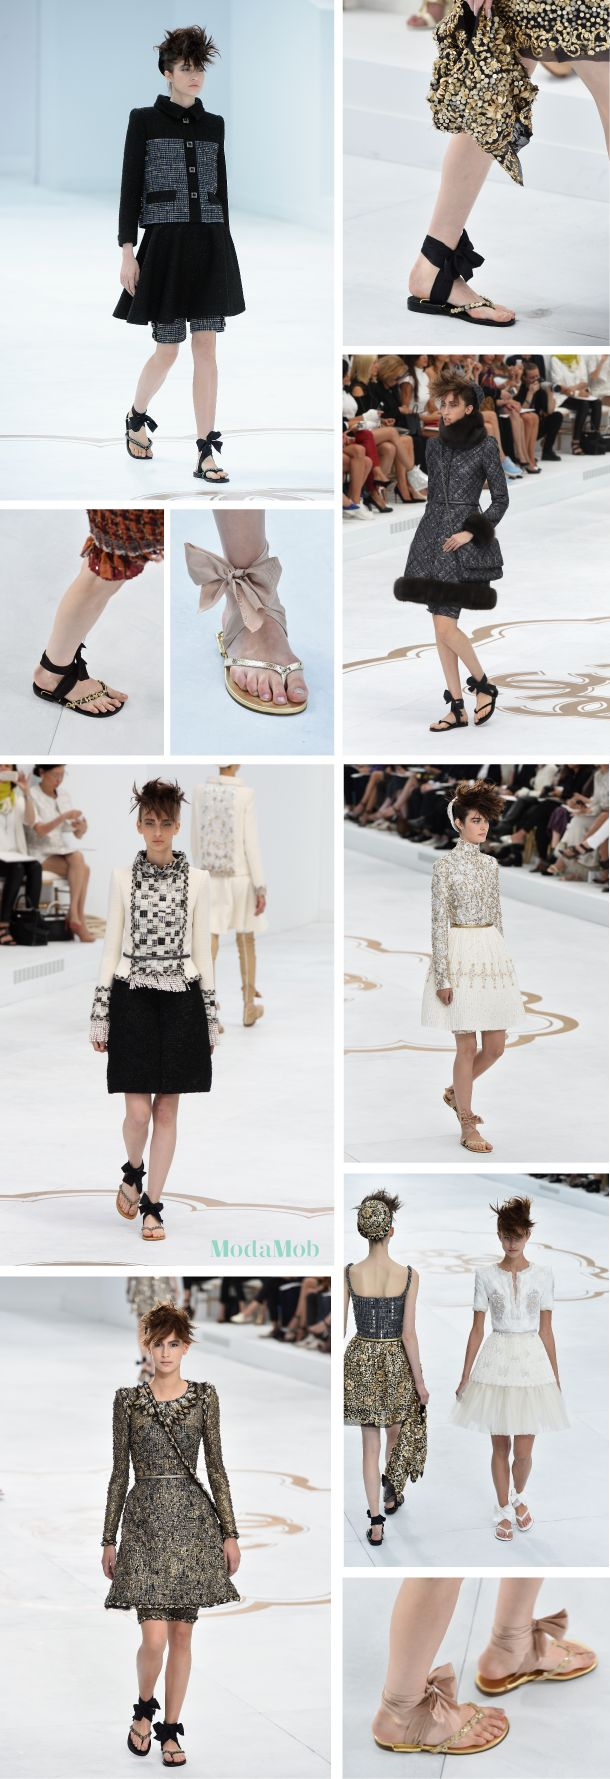 Chanel Has Flip Flops You Can Wear to Work: http://www.modamob.com/chanel/chanel-has-flip-flops-you-can-wear-work.html